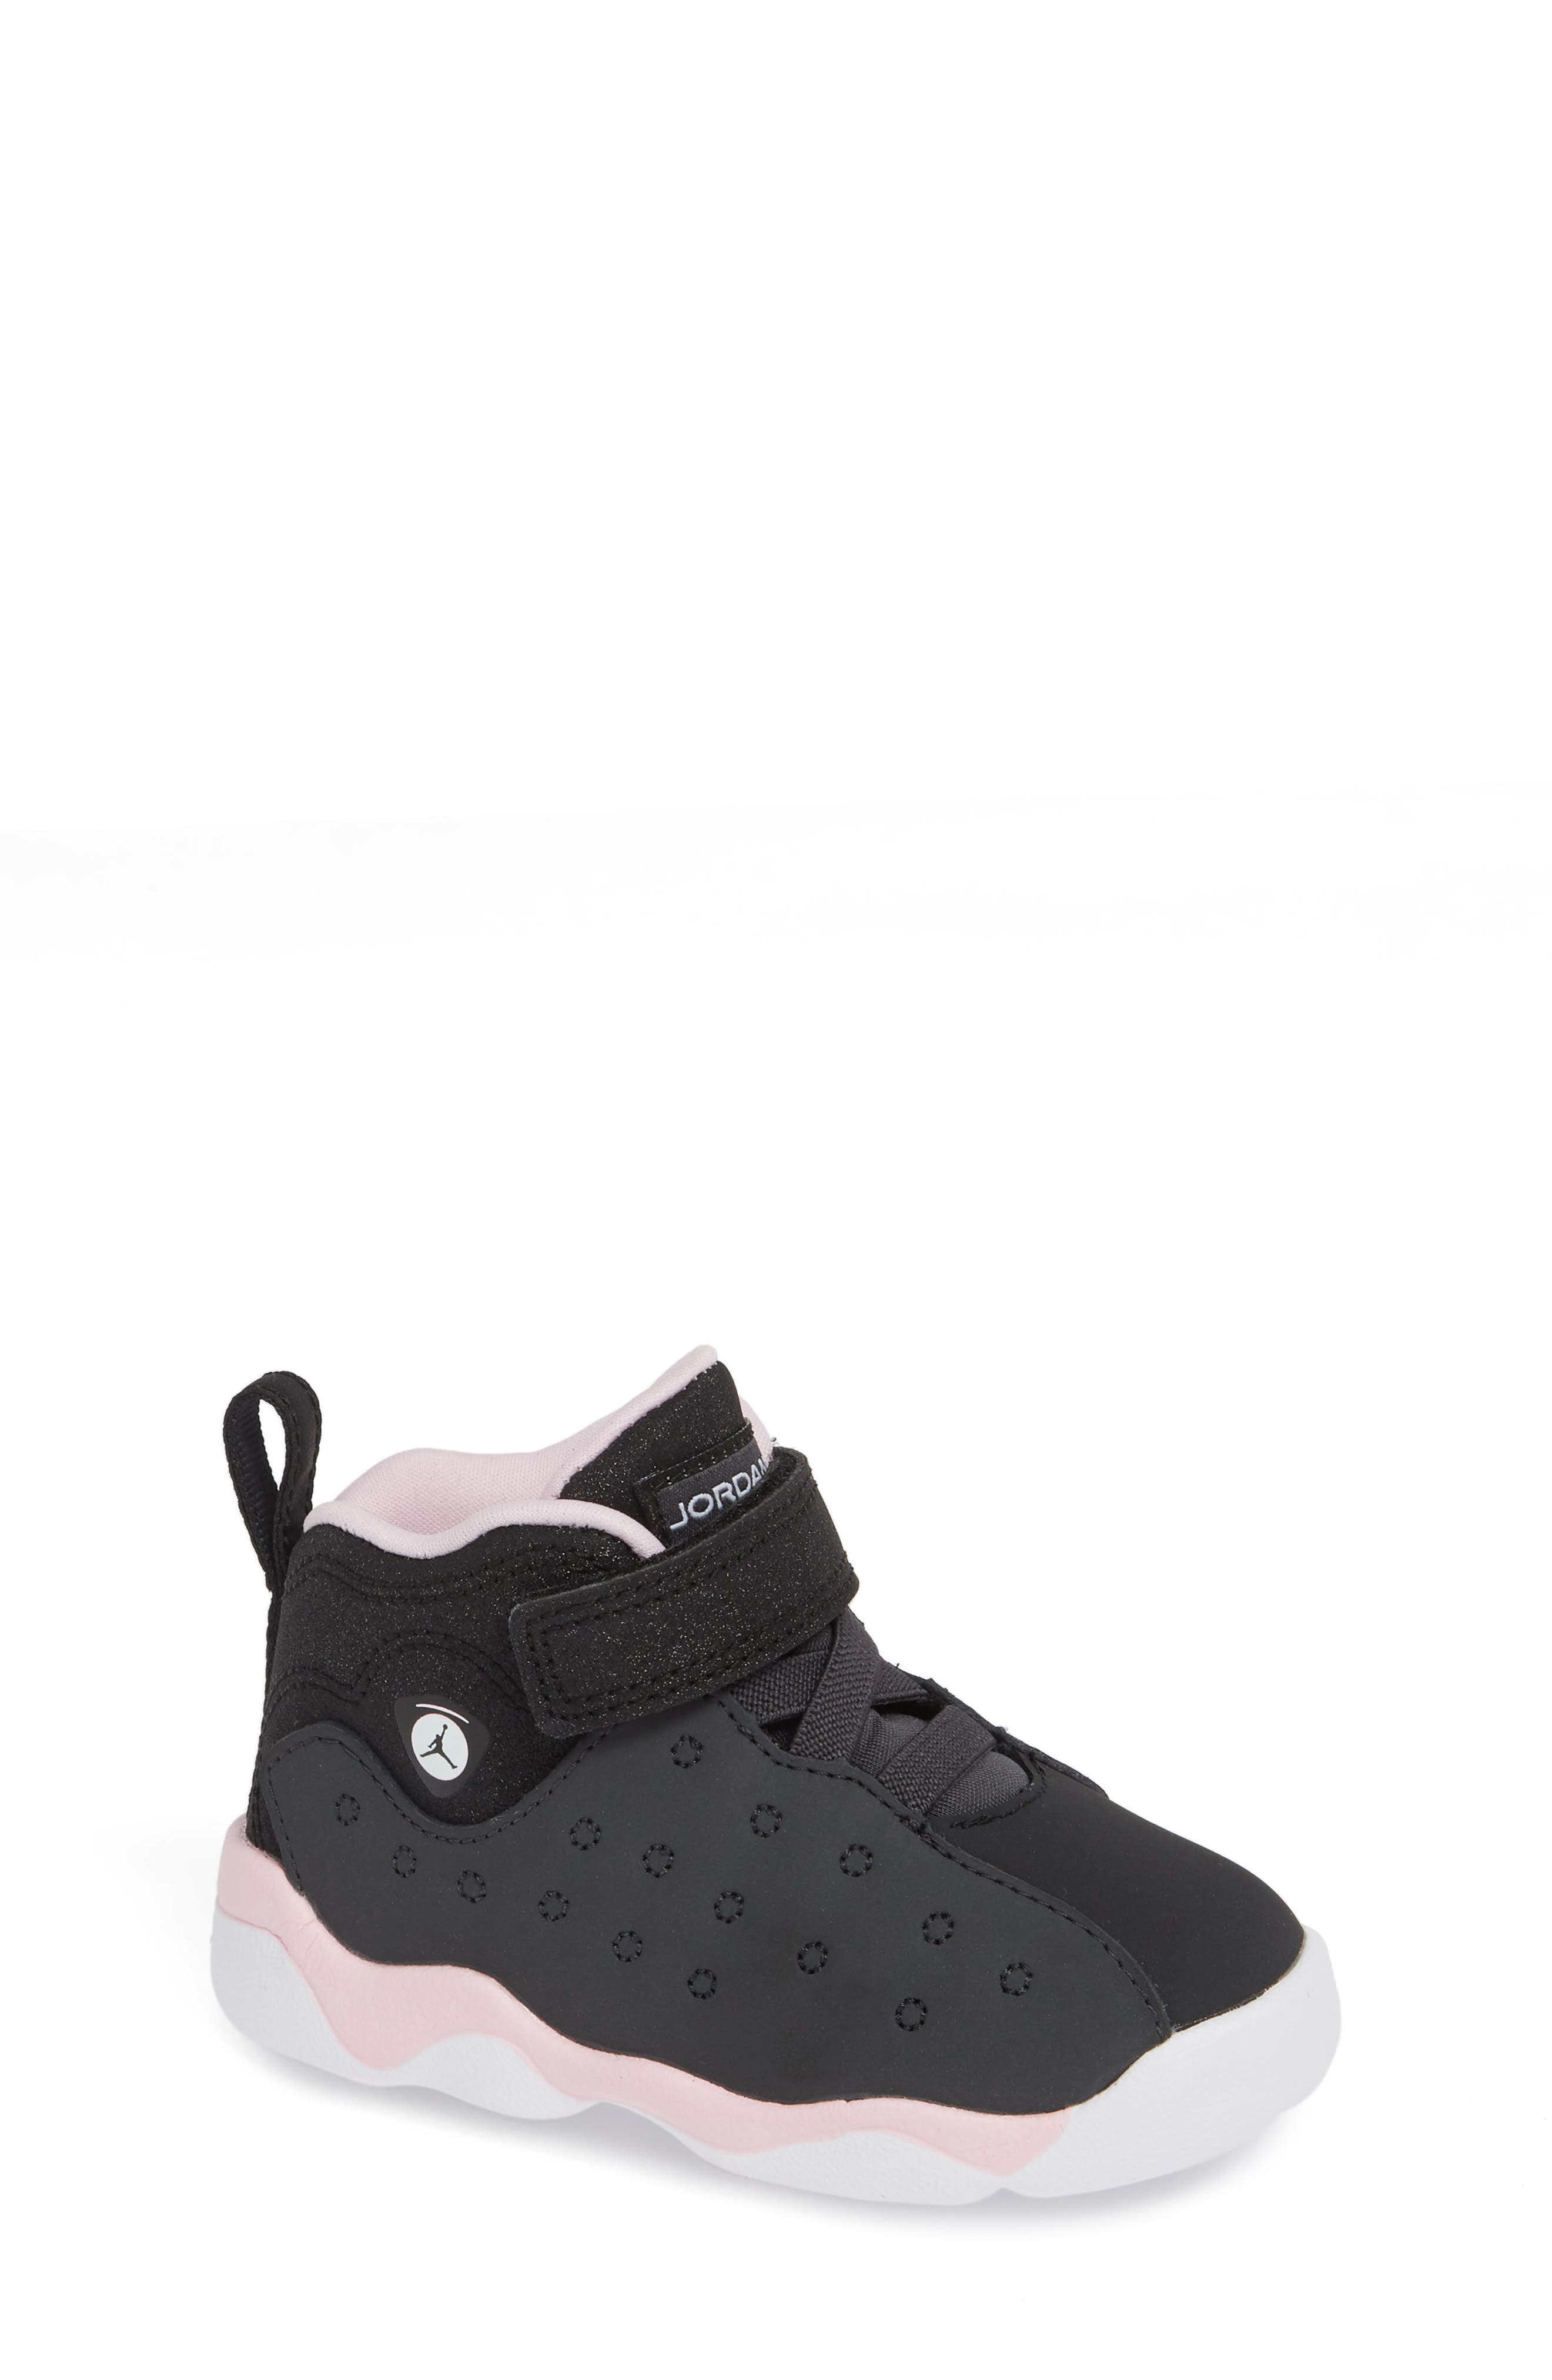 Jumpman Team II Sneaker,                             Main thumbnail 1, color,                             ANTHRACITE/ BLACK-PINK -WHITE